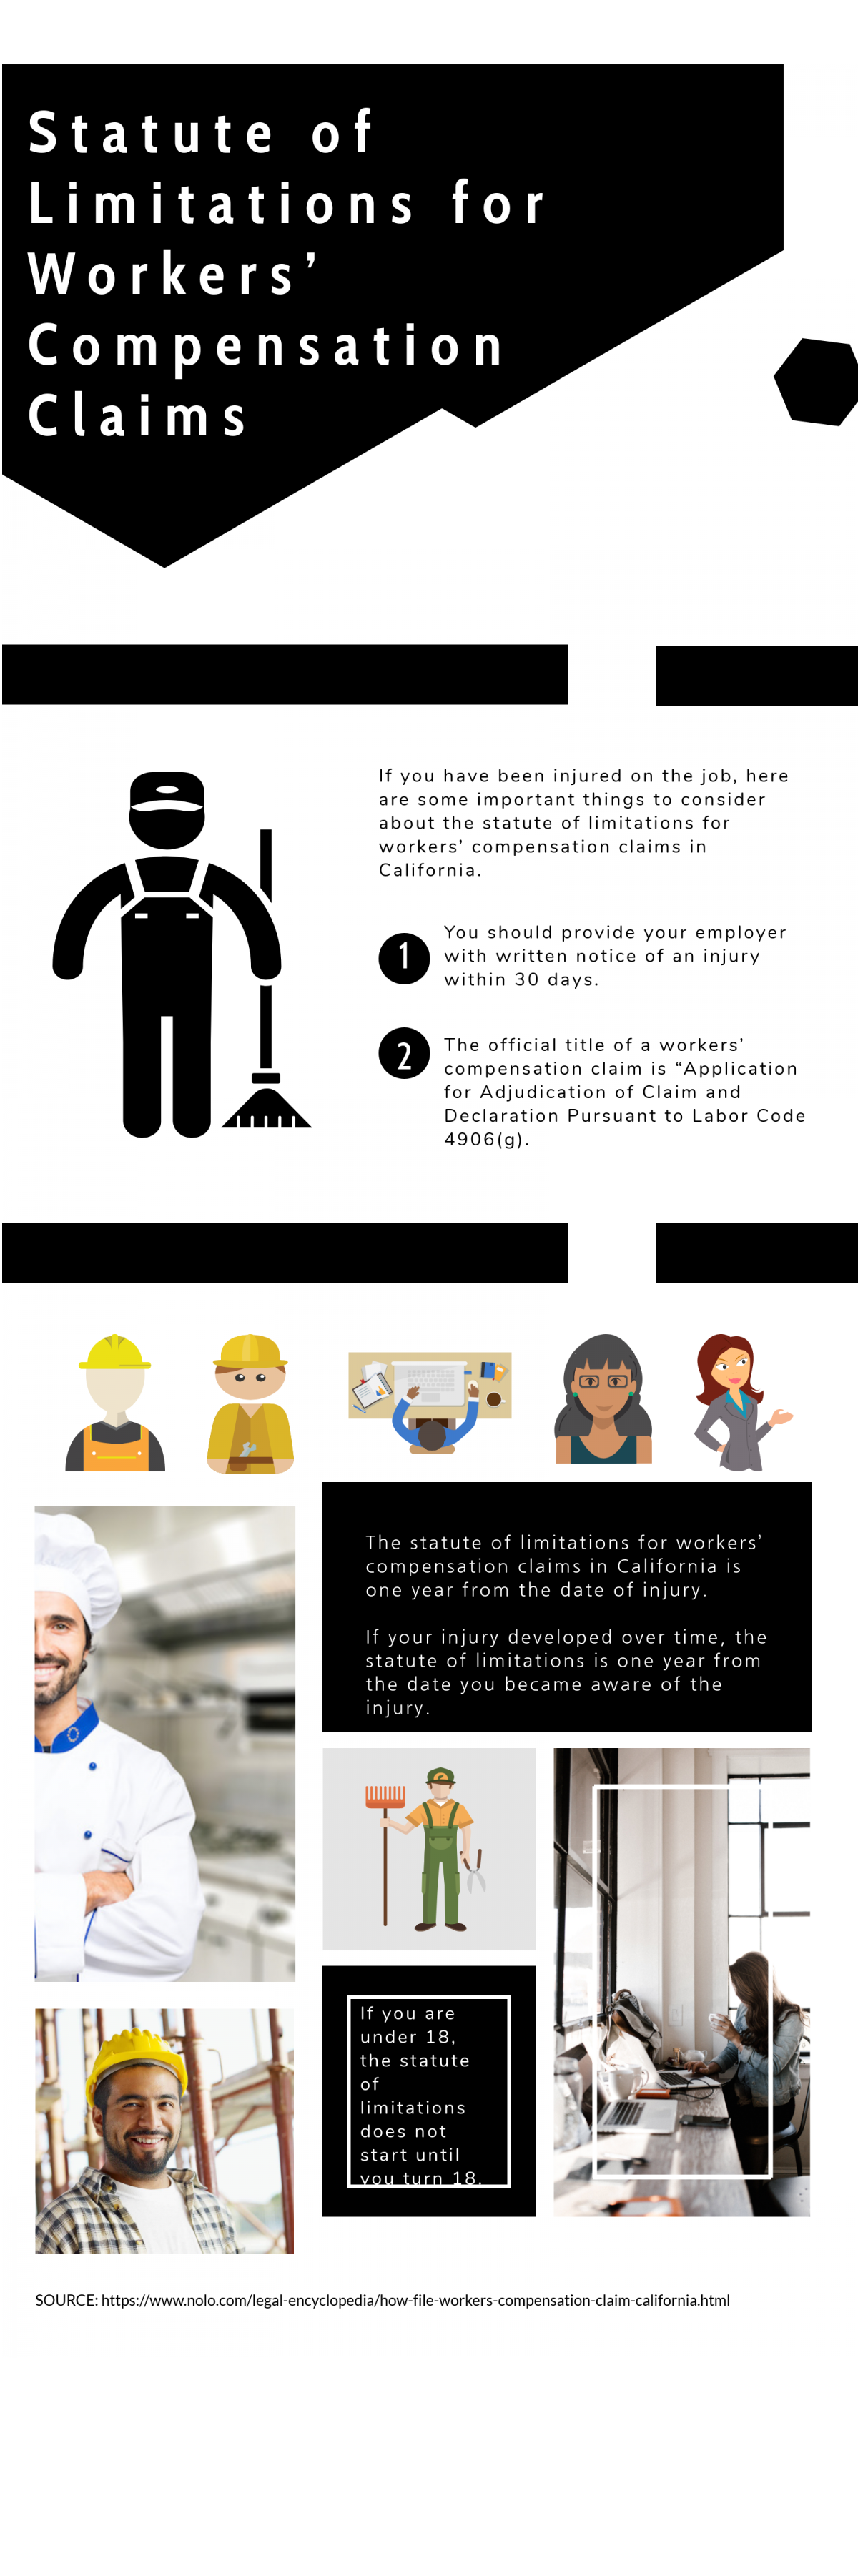 INFOGRAPHIC: Statute of Limitations for Workers' Compensation Claims